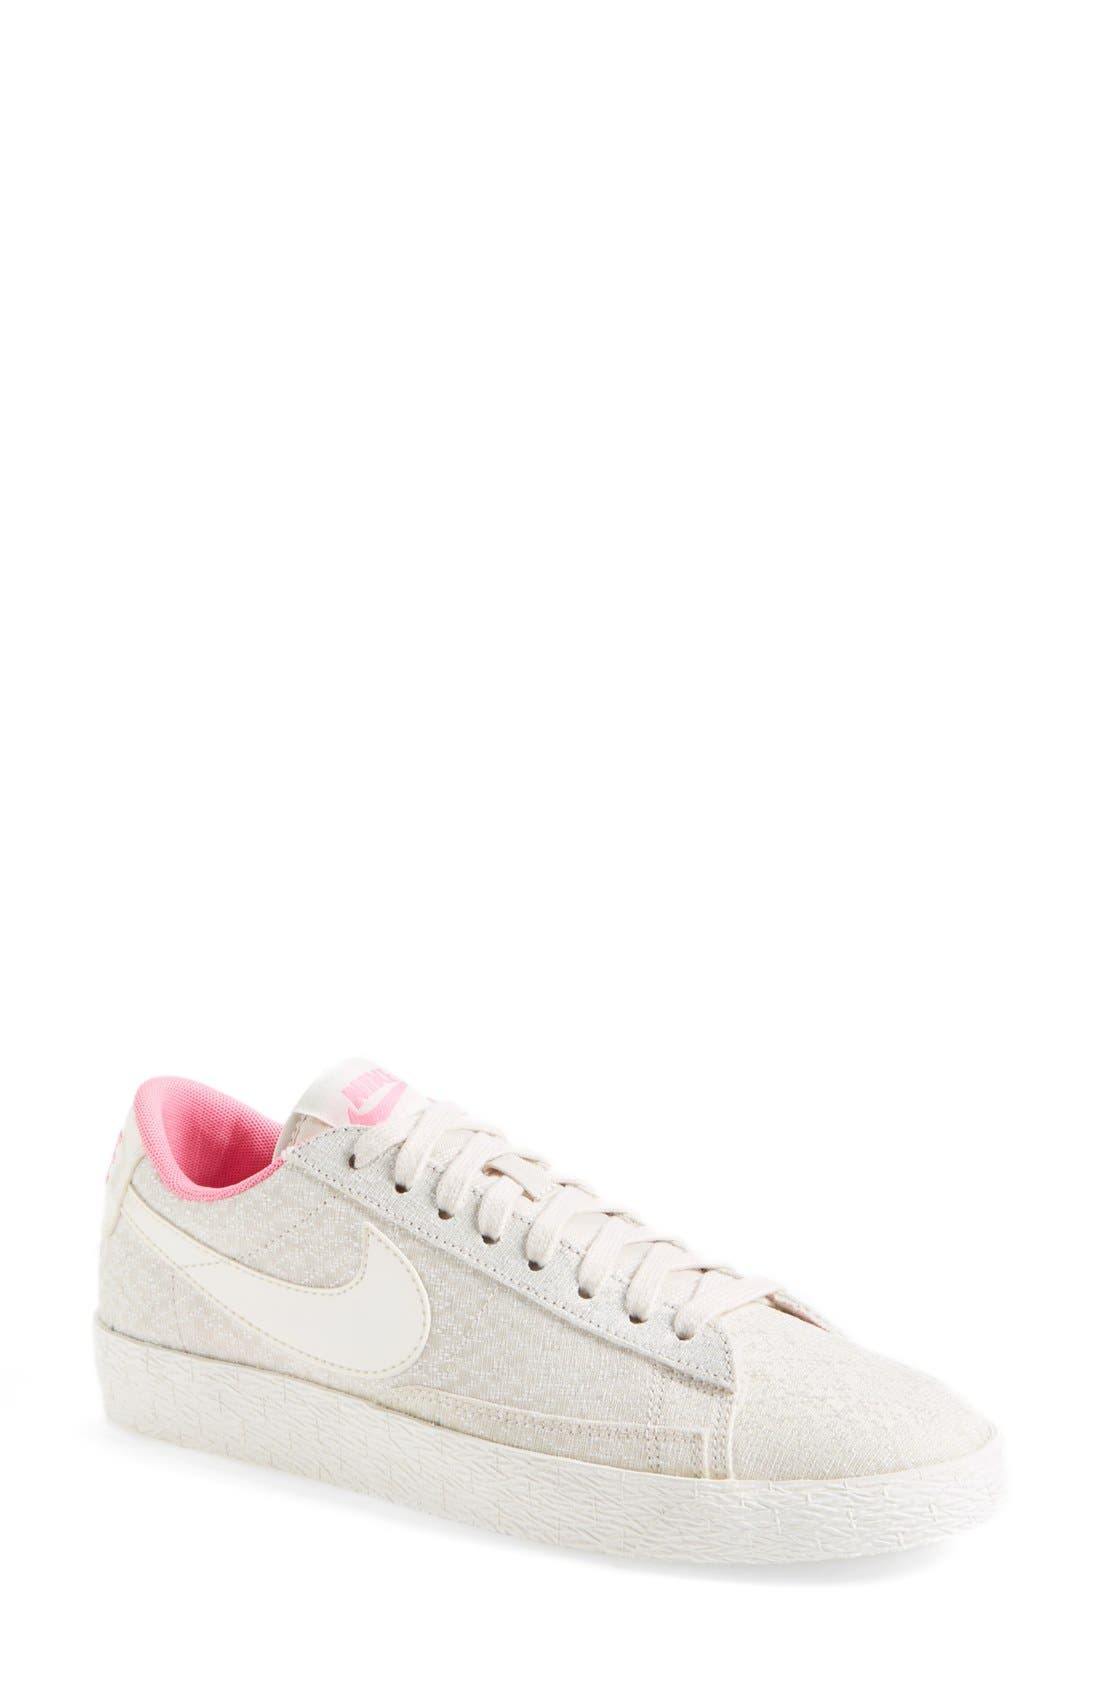 Main Image - Nike 'Blazer' Low-Top Sneaker (Women)